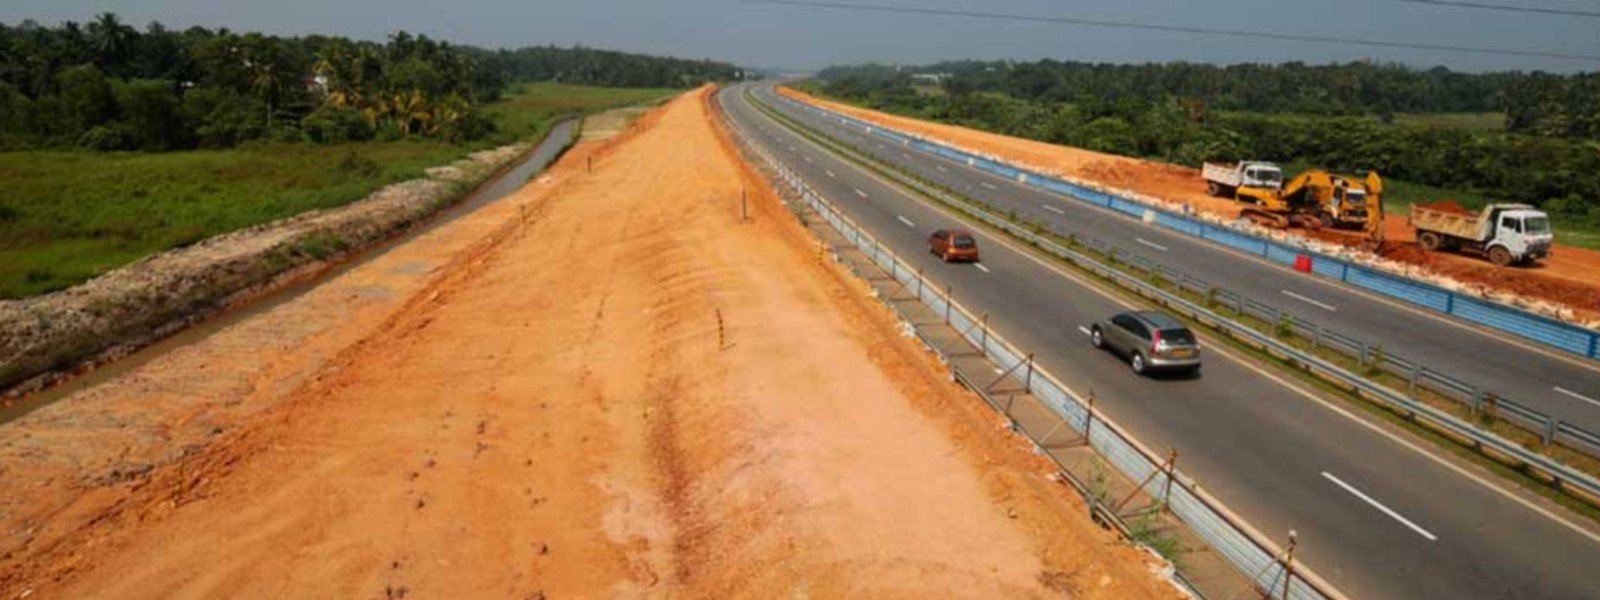 Minister calls for report on deceleration of Kadawatha – Mirigama expressway